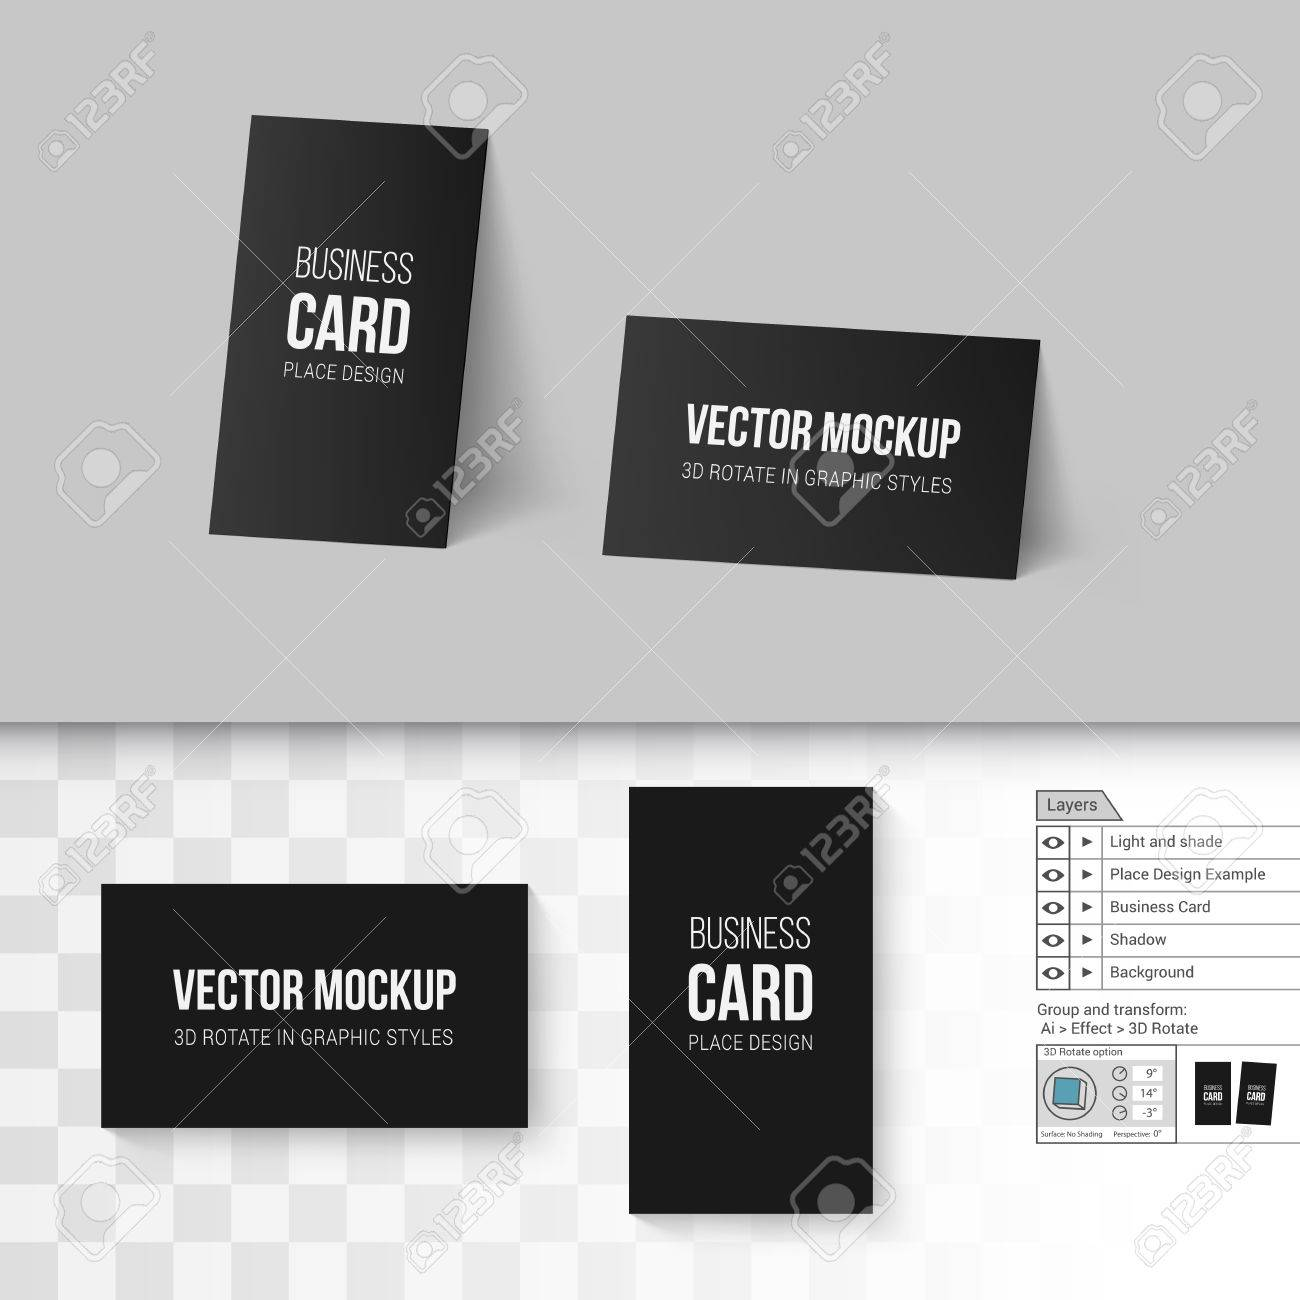 Amazing geographics business cards template images business card comfortable geographics business cards template gallery example solutioingenieria Images